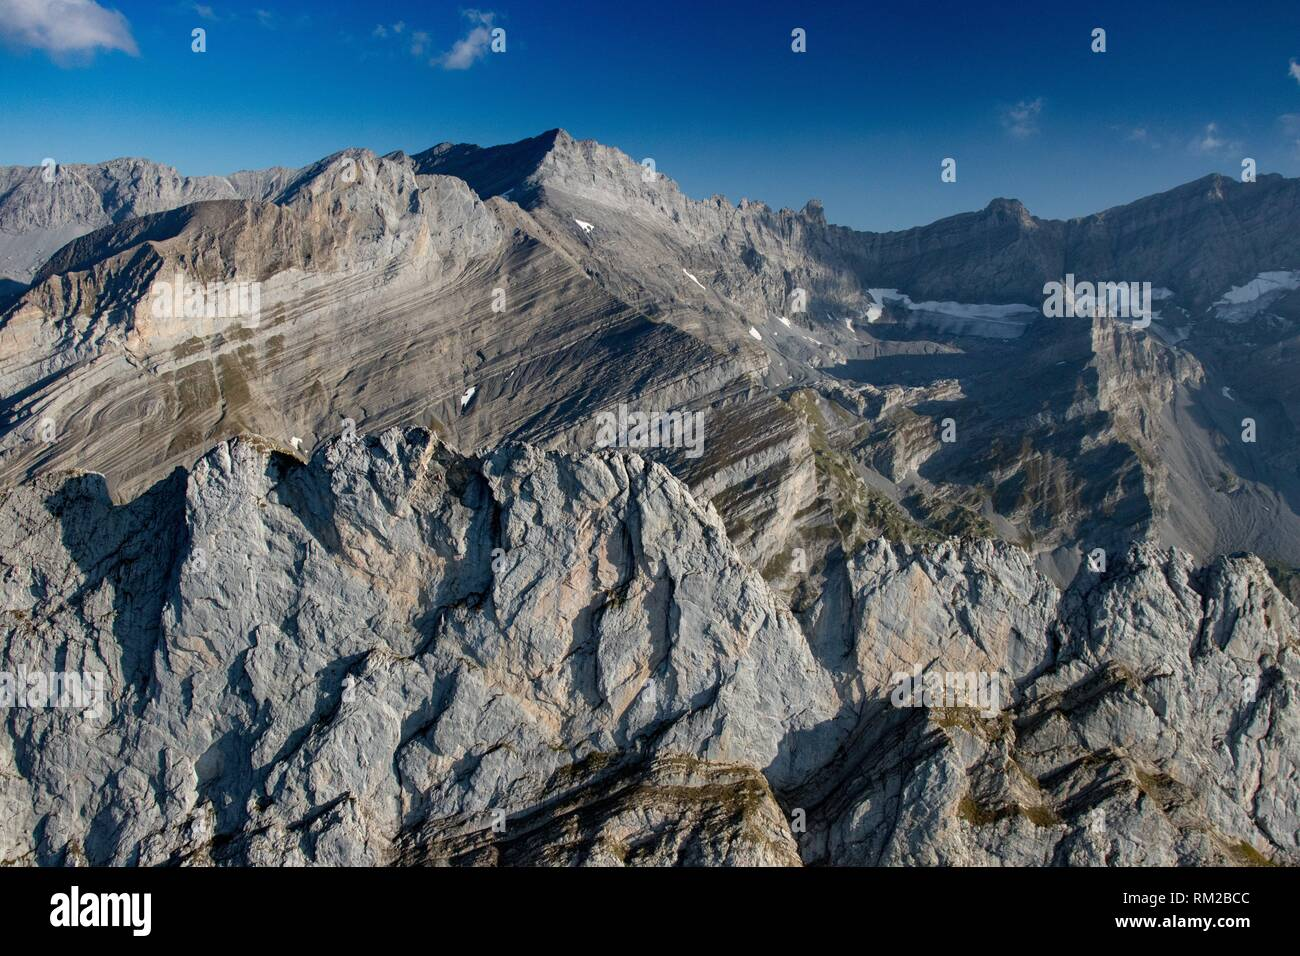 Looking south with Grand Muveran in the background. Bernese Alps. Switzerland. - Stock Image